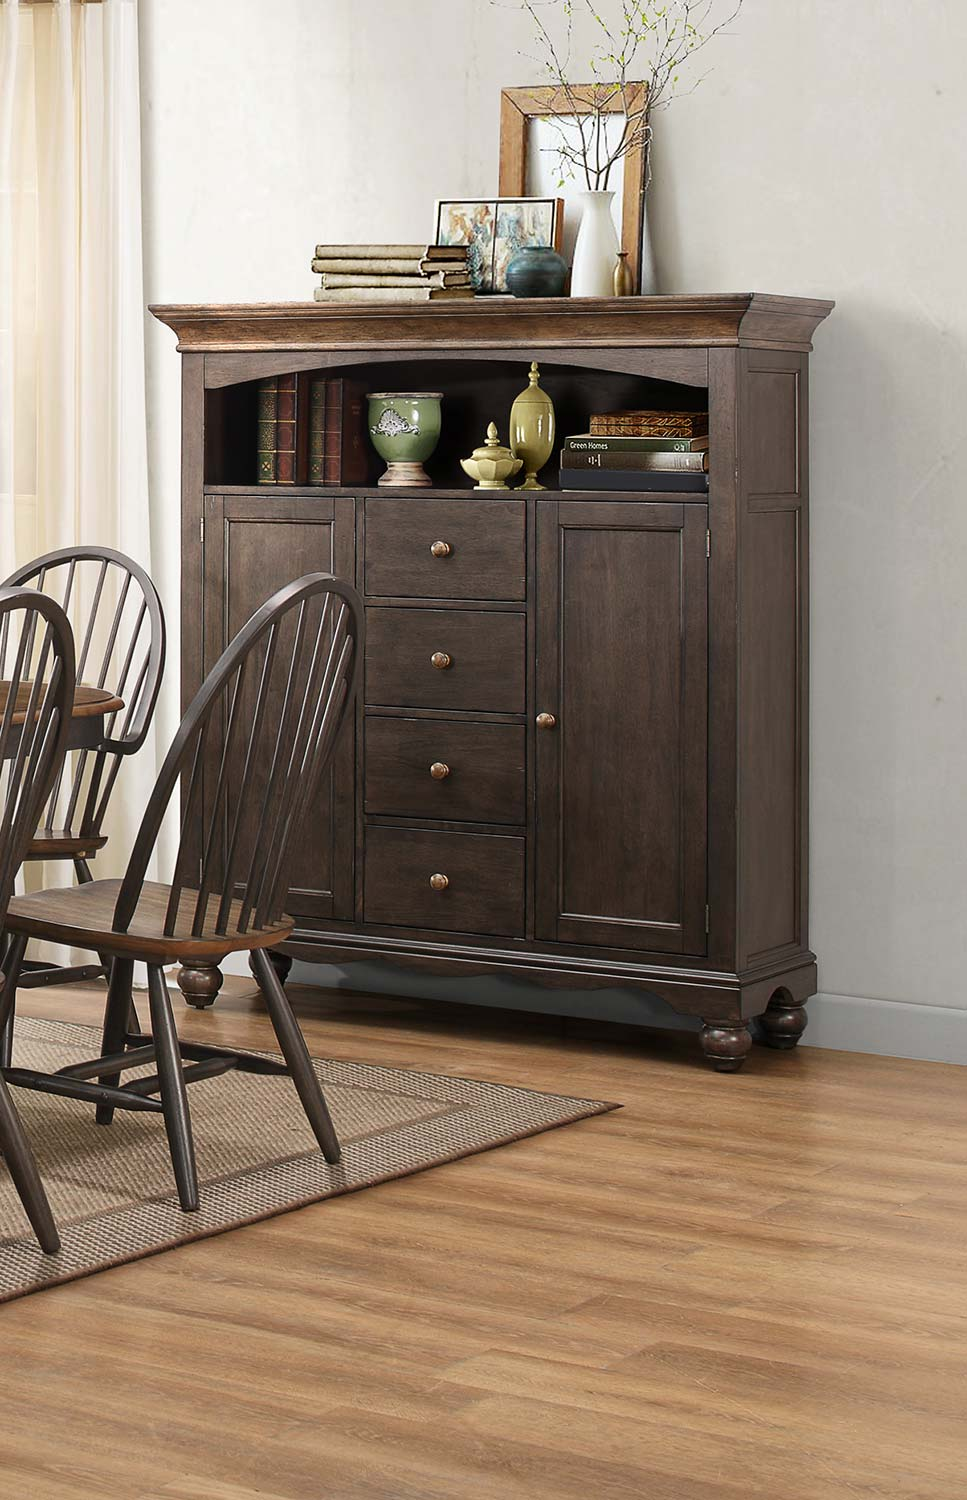 Homelegance Cline Curio - Two tone finish